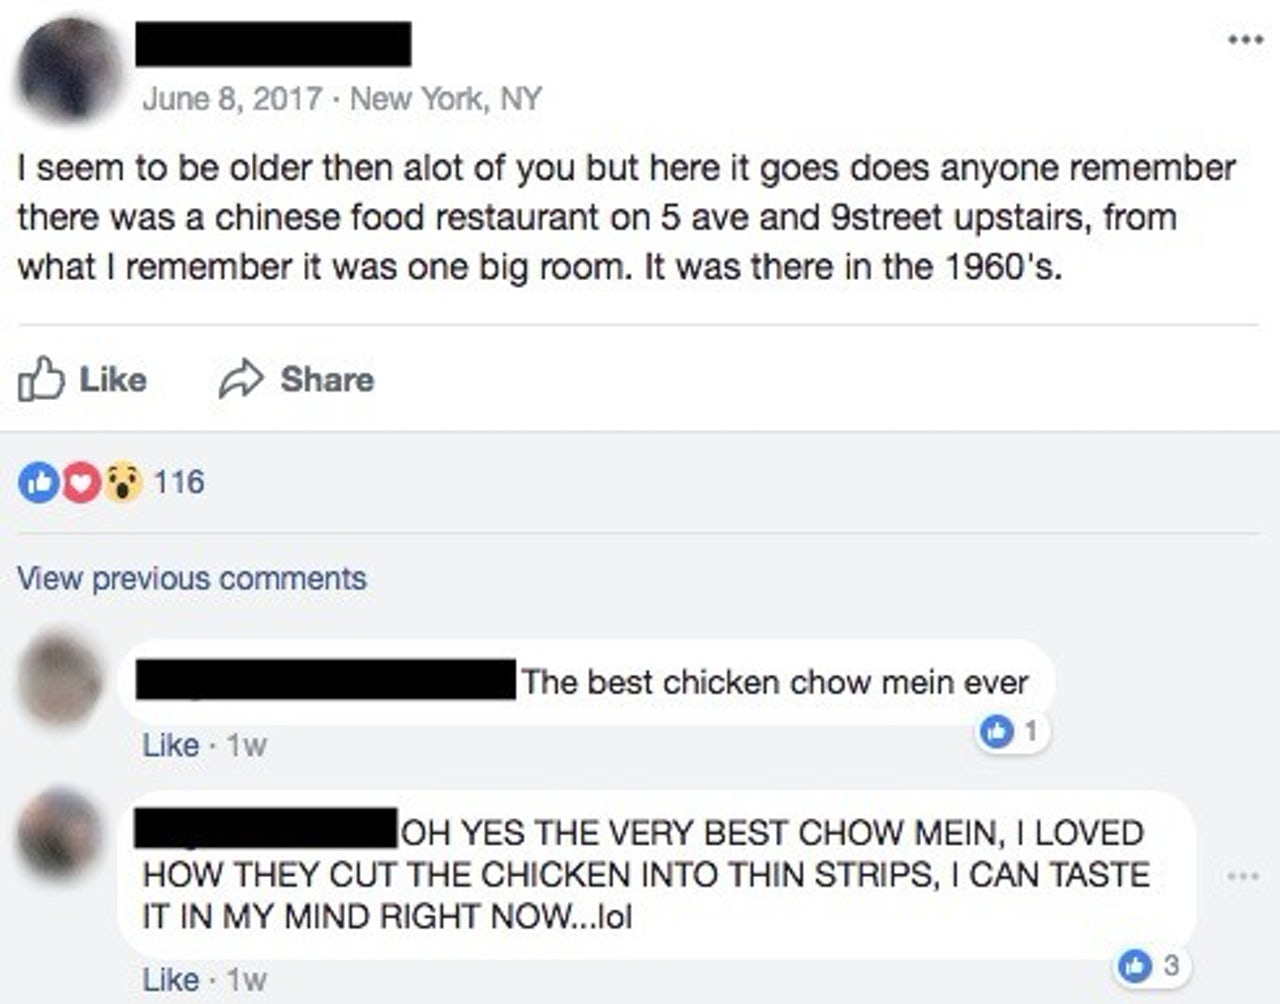 A screencap from a neighborhood Facebook group discussing a defunct Chinese restaurant.